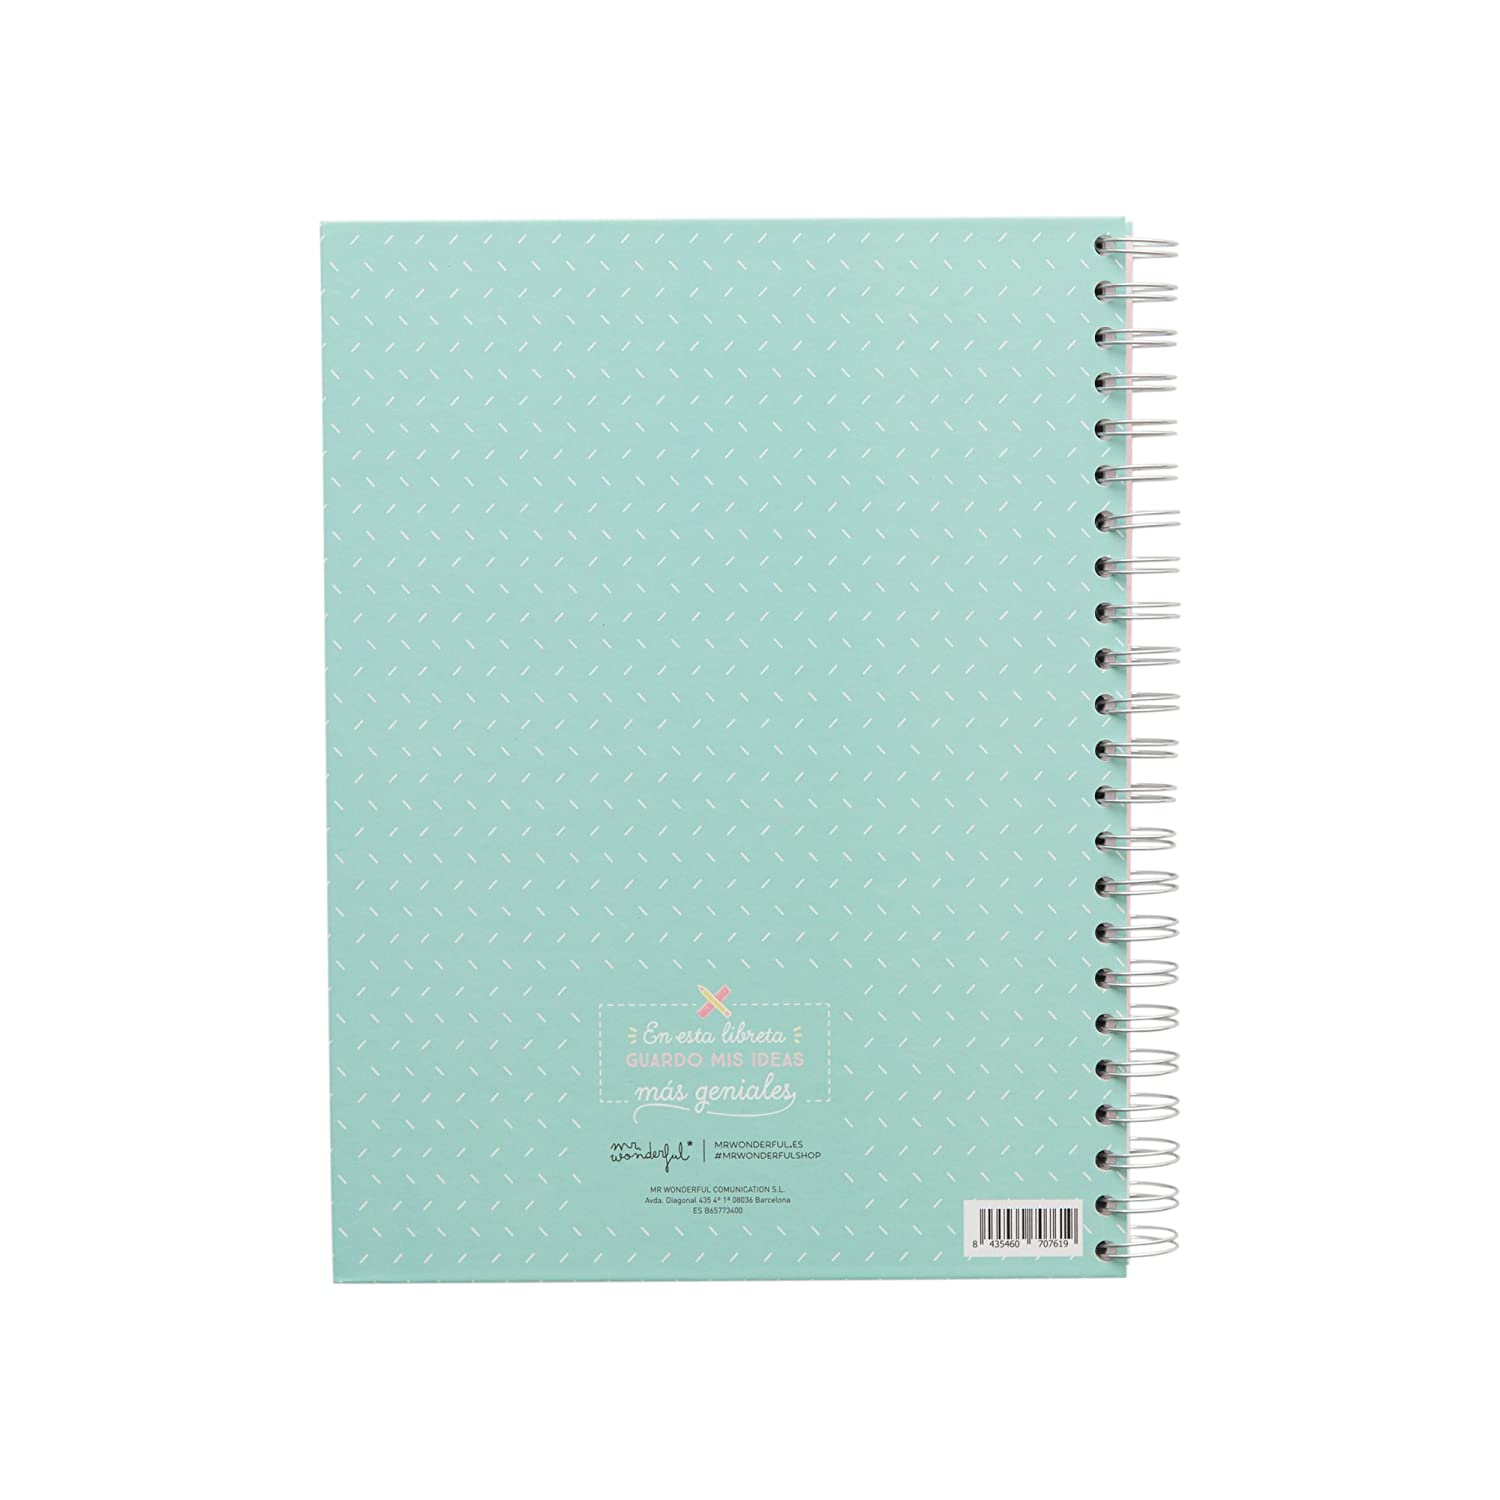 Amazon.com : Mr. Wonderful WOA03716ES Large Notebook with ...